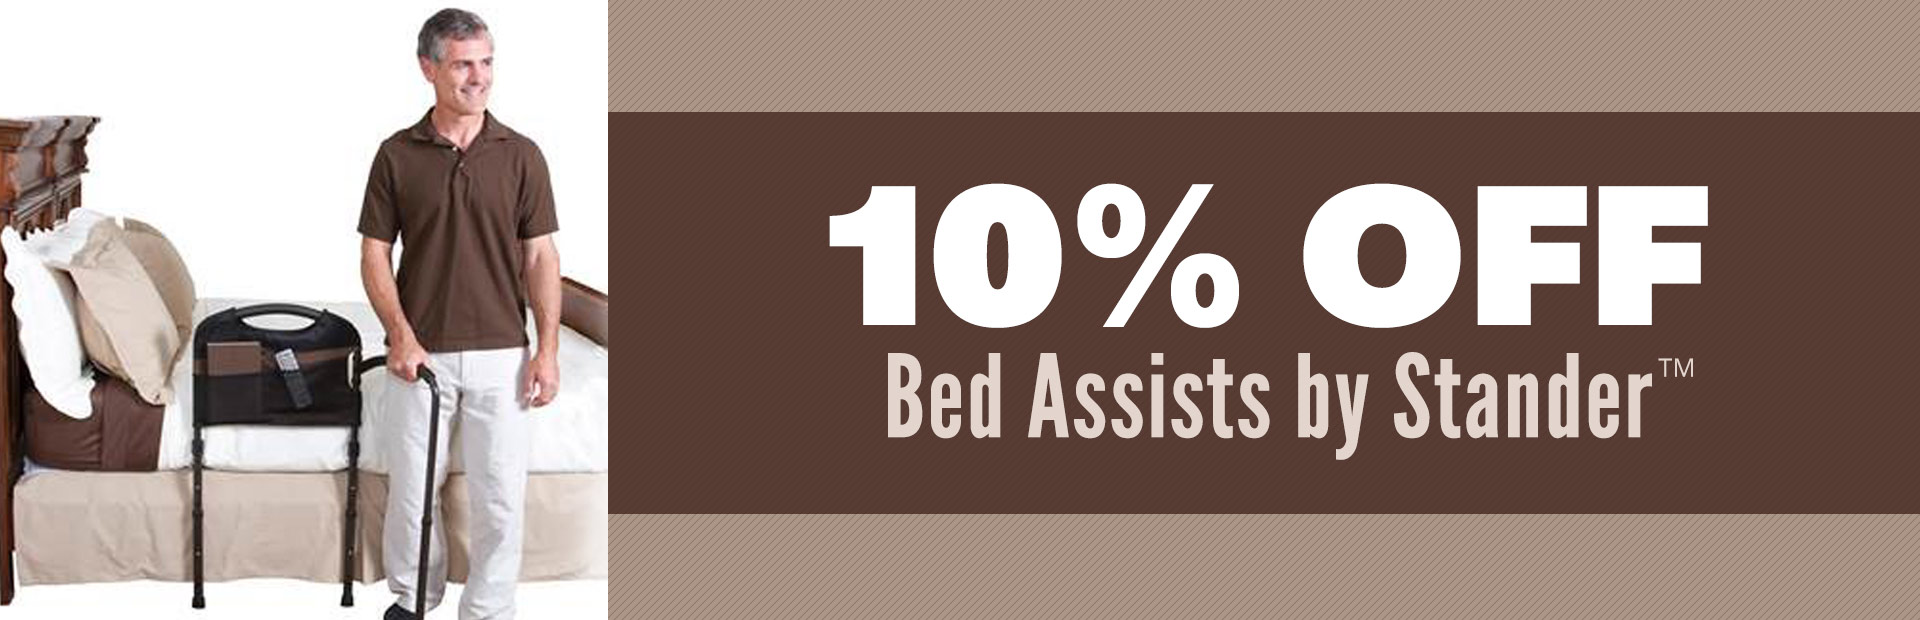 Get 10% off bed assists by Stander™!